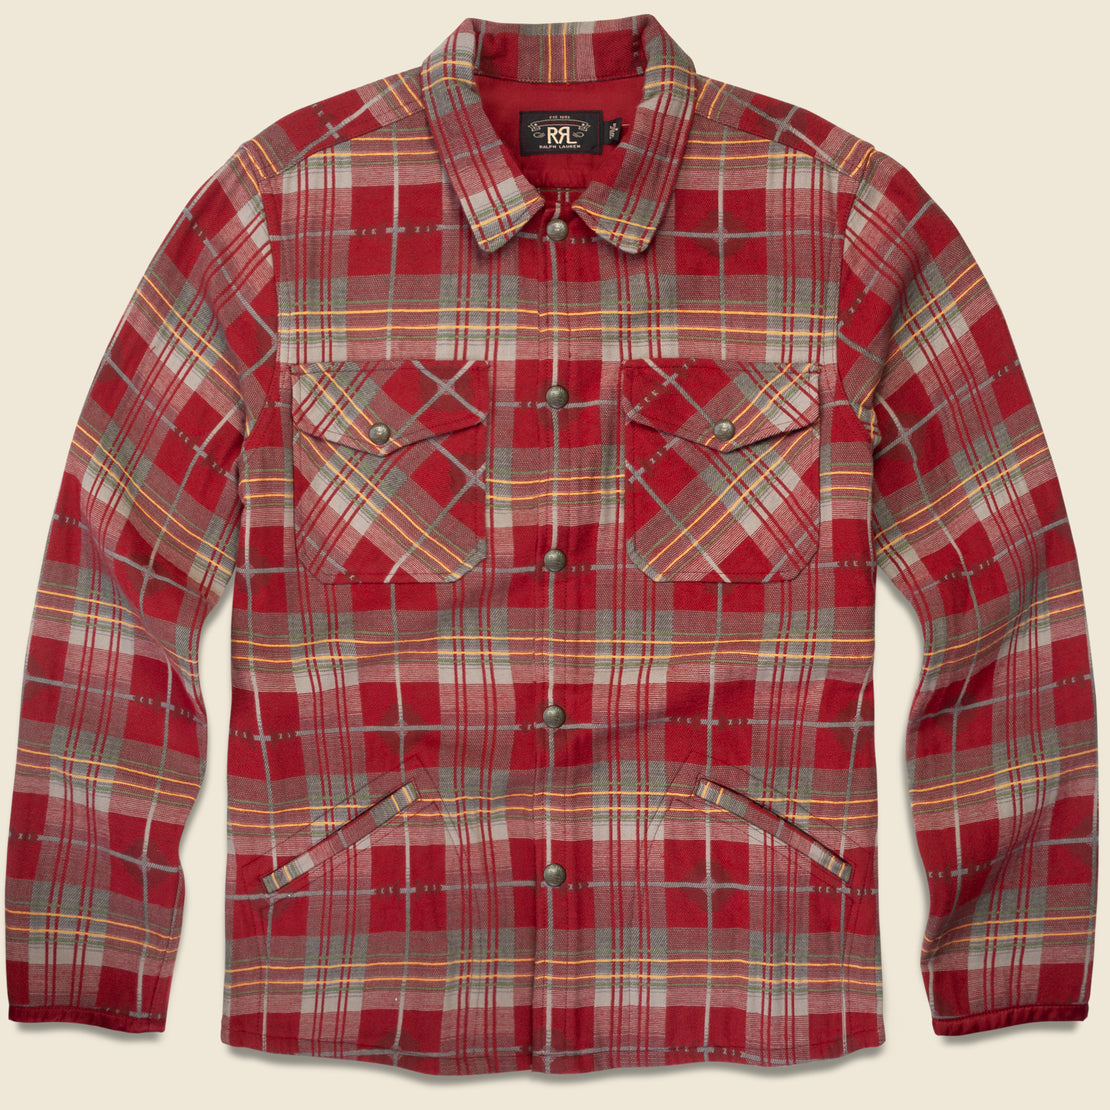 RRL Jacquard Workshirt - Red